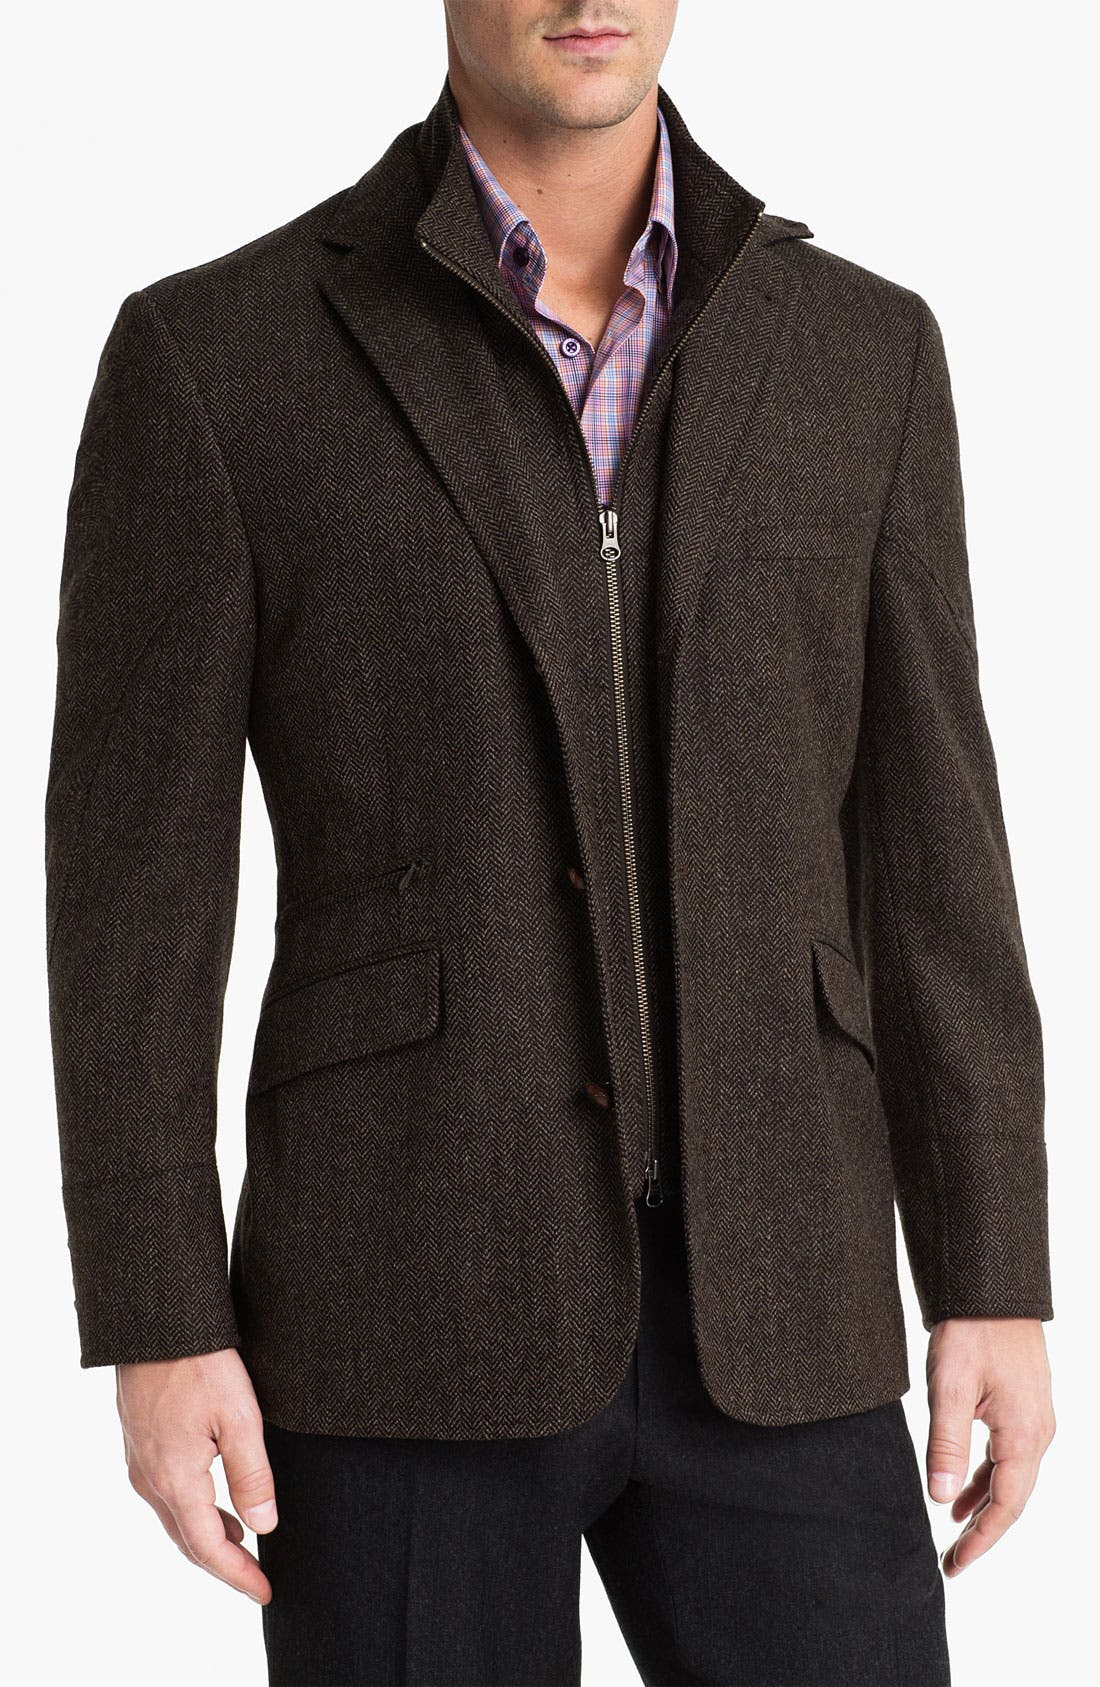 Alternate Image 1 Selected - Kroon 'Ritchie' Wool & Cashmere Sportcoat